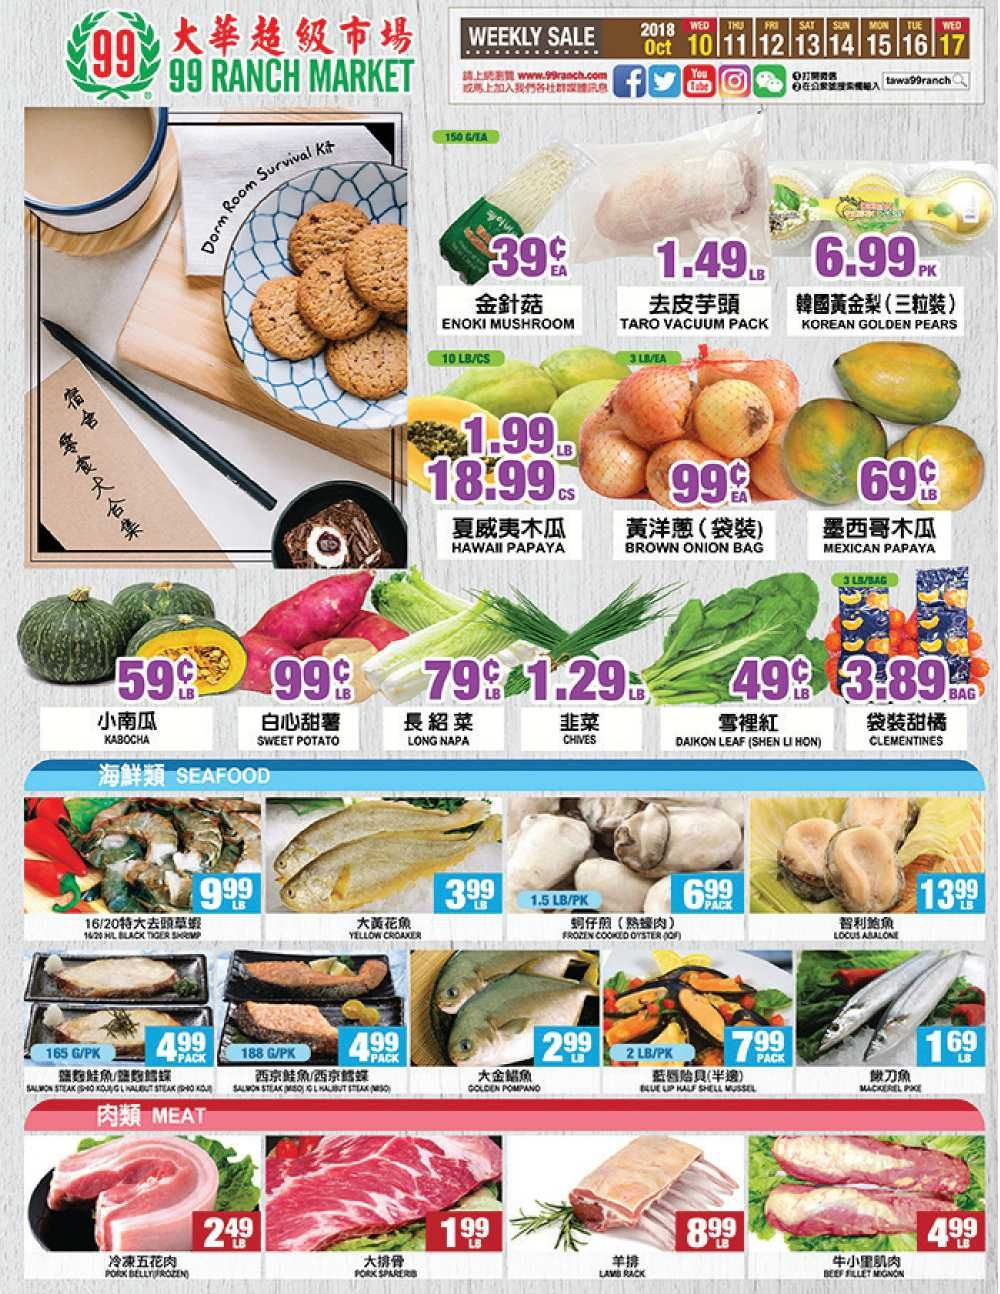 99 Ranch Market Weekly Special Flyer January 16 23, 2019